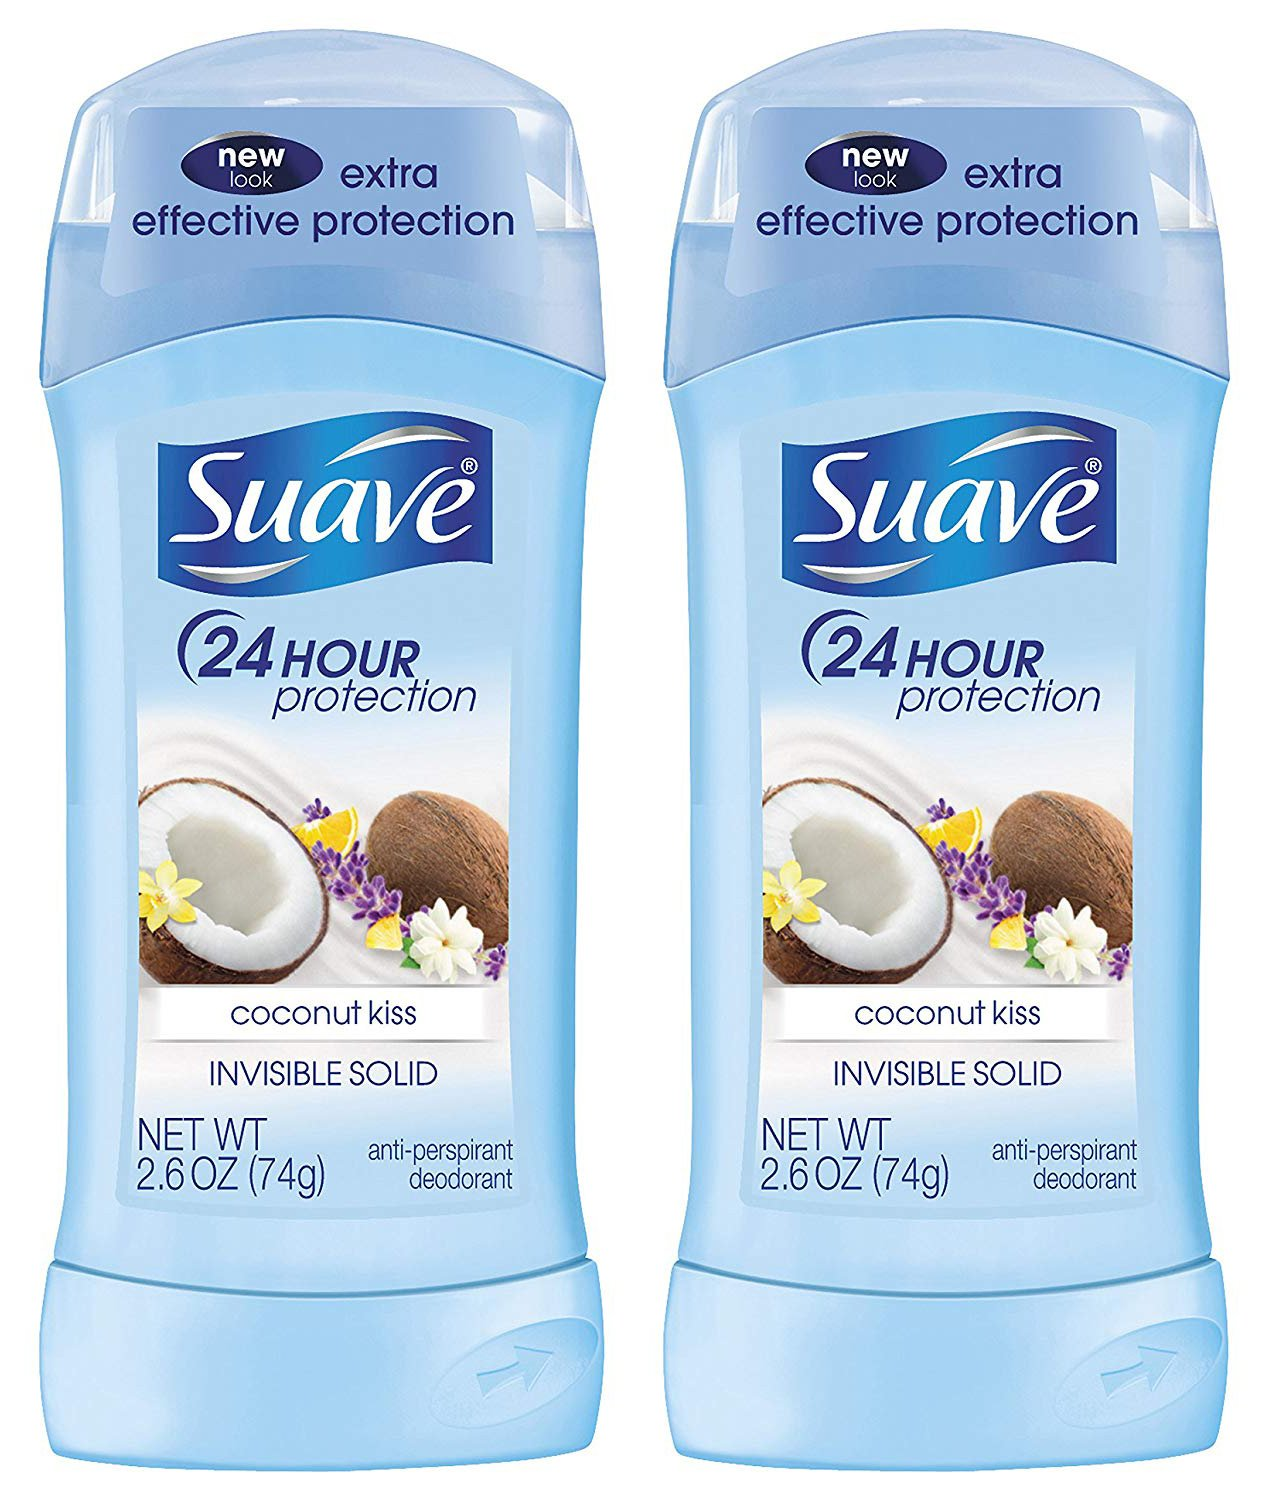 Deodorant for women by Suave | Coconut Kiss Antiperspirant | Invisible Solid Deodorant Stick | 2.6 oz | Value Quad (Four) Pack